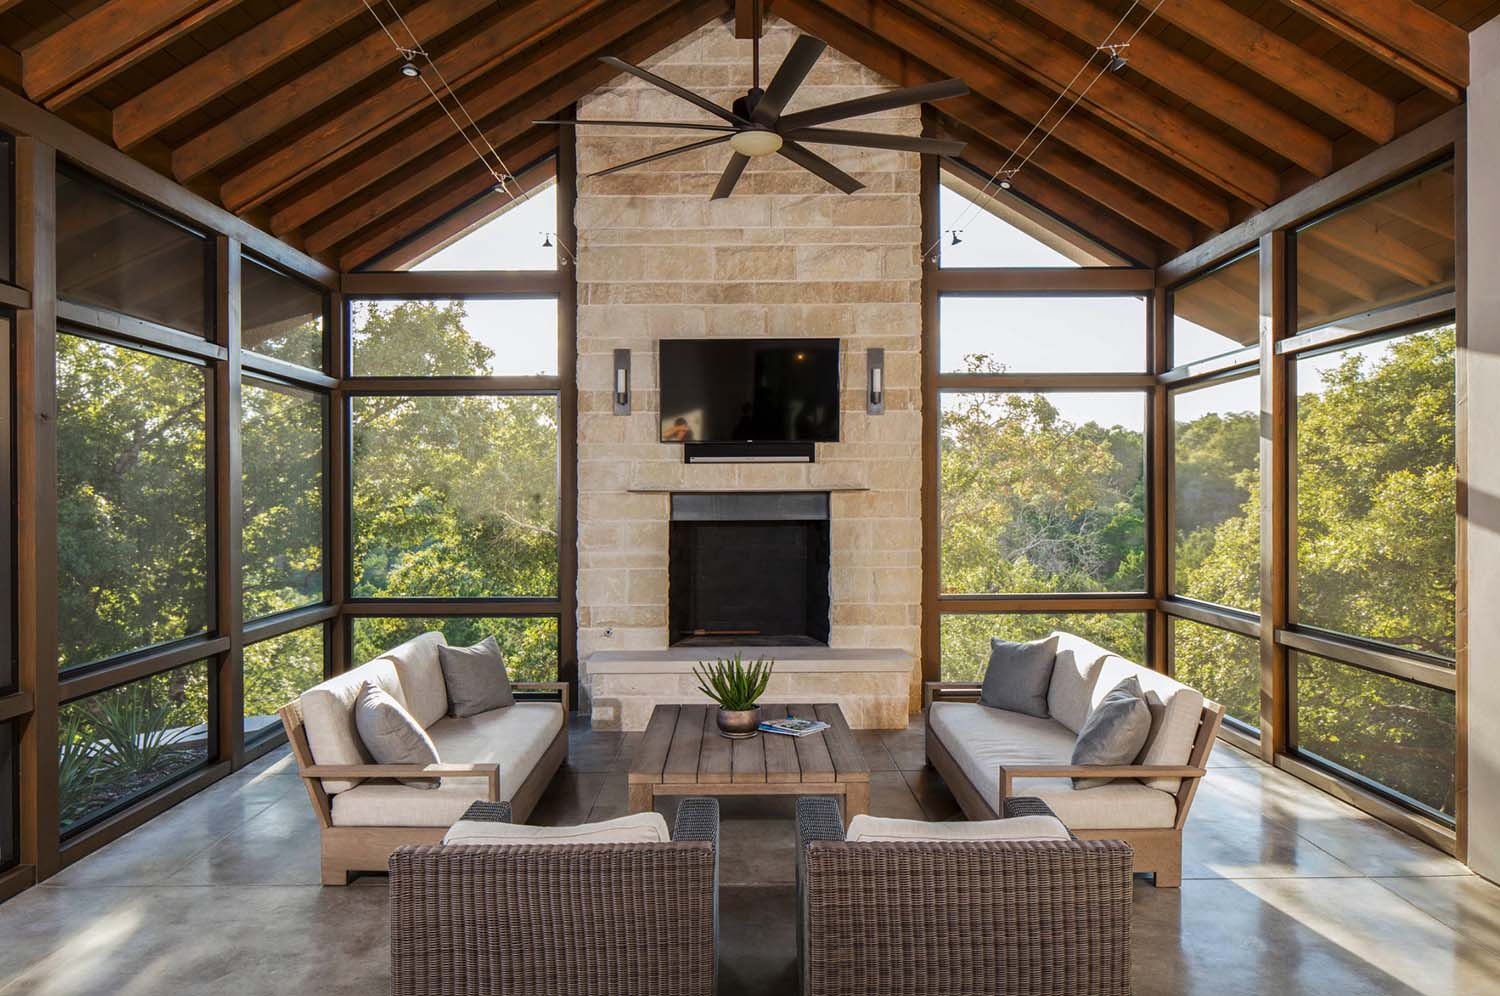 s15 Great ideas for screened porches that can inspire you